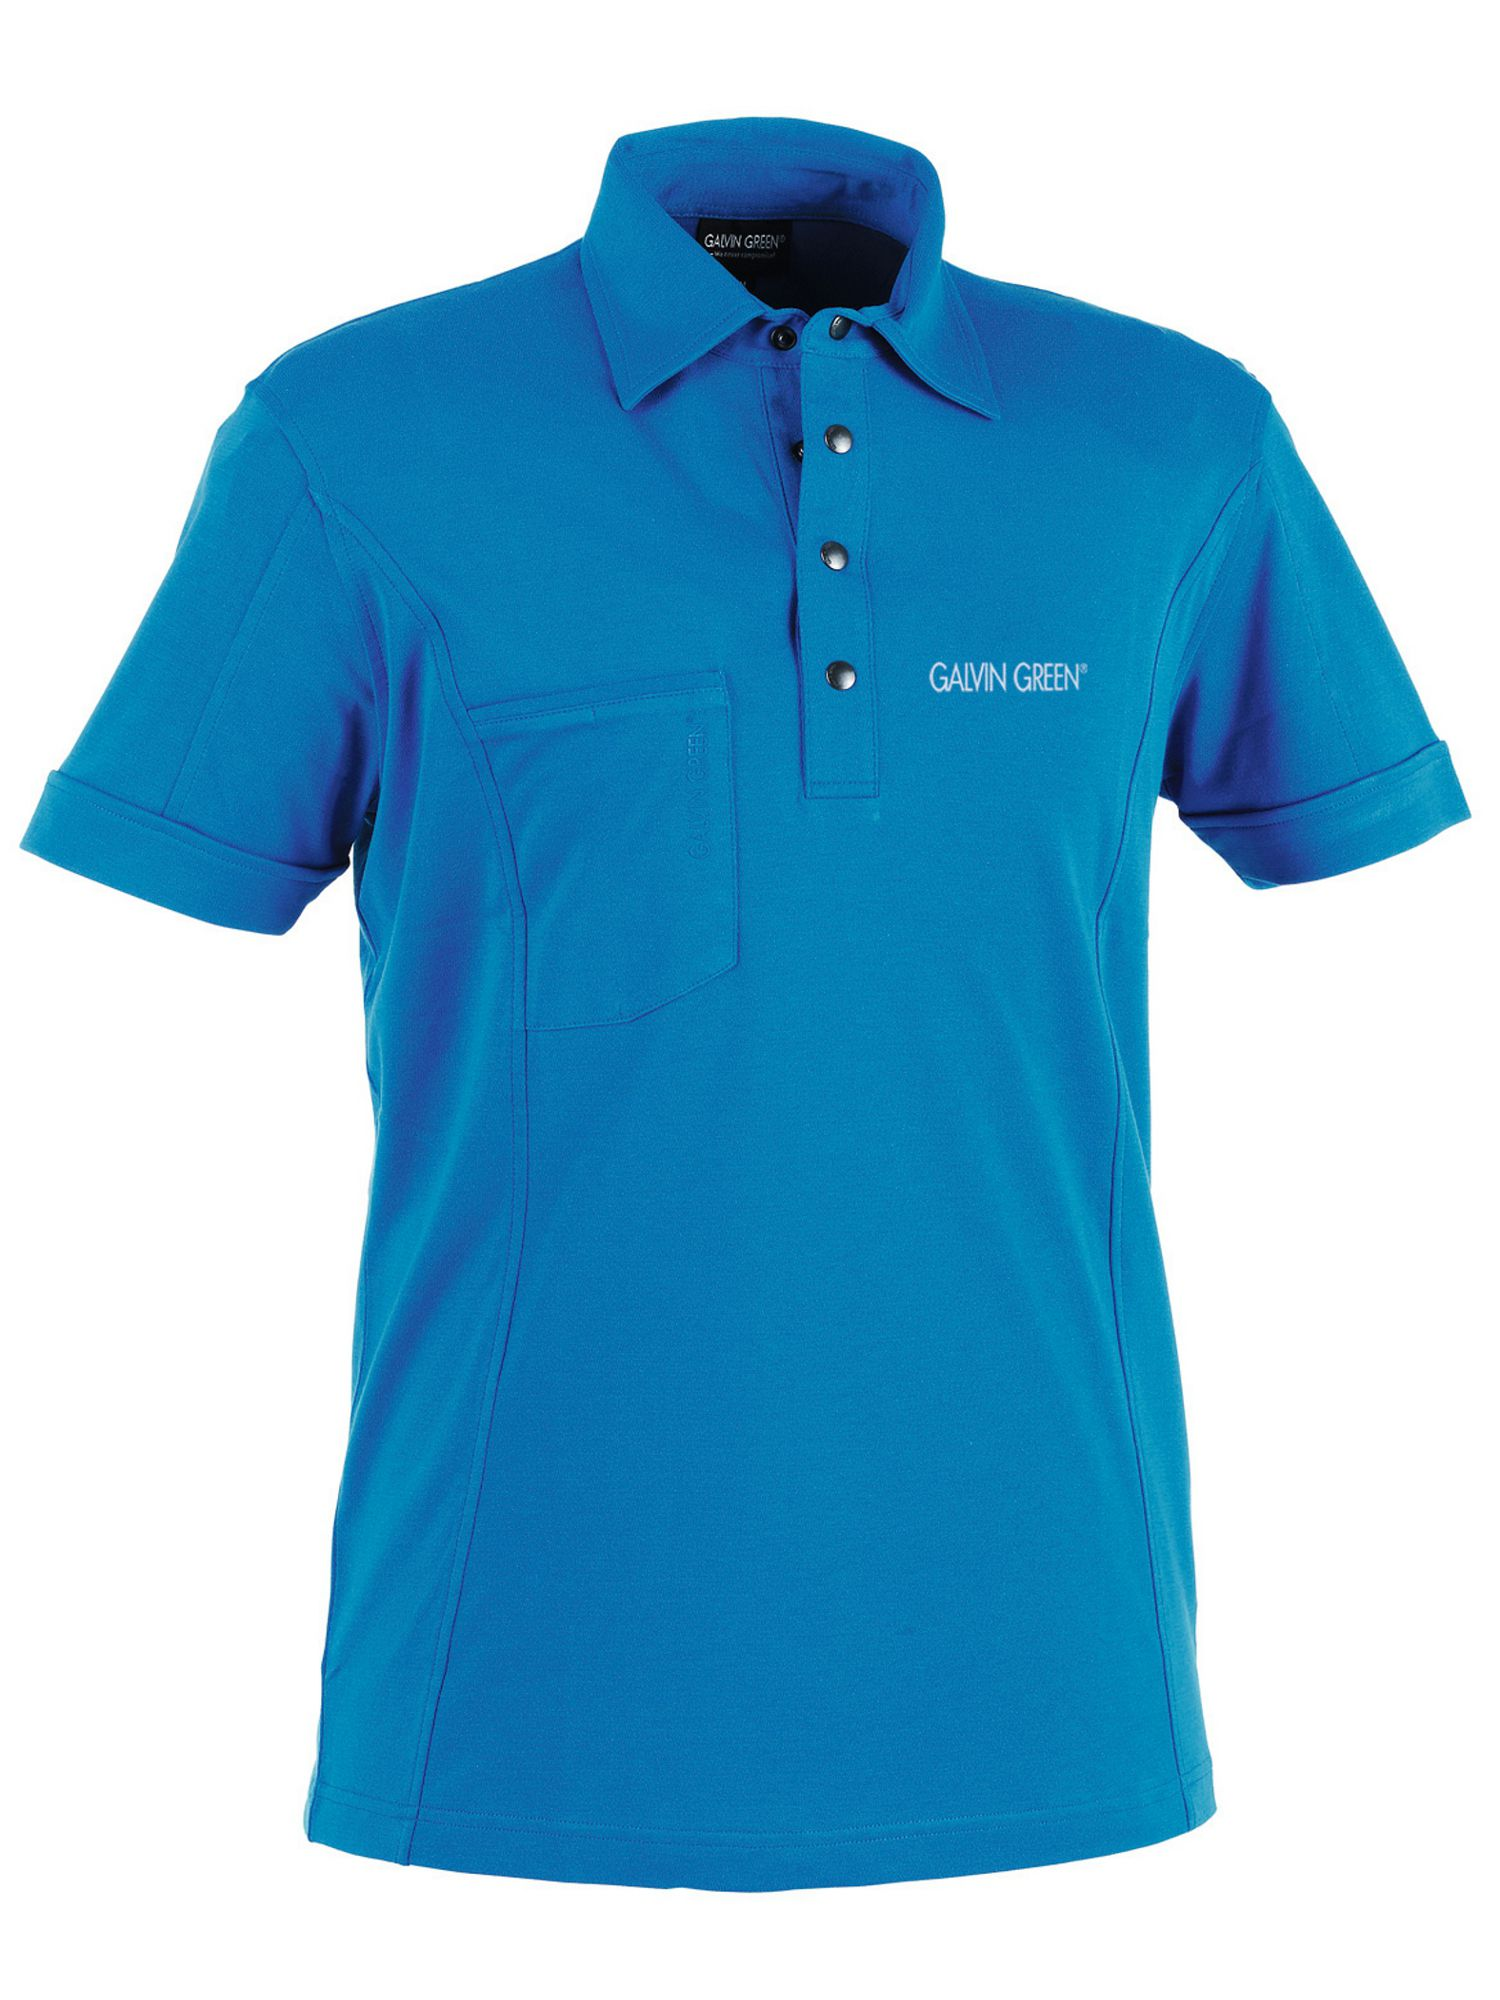 Max tour edition golf shirt